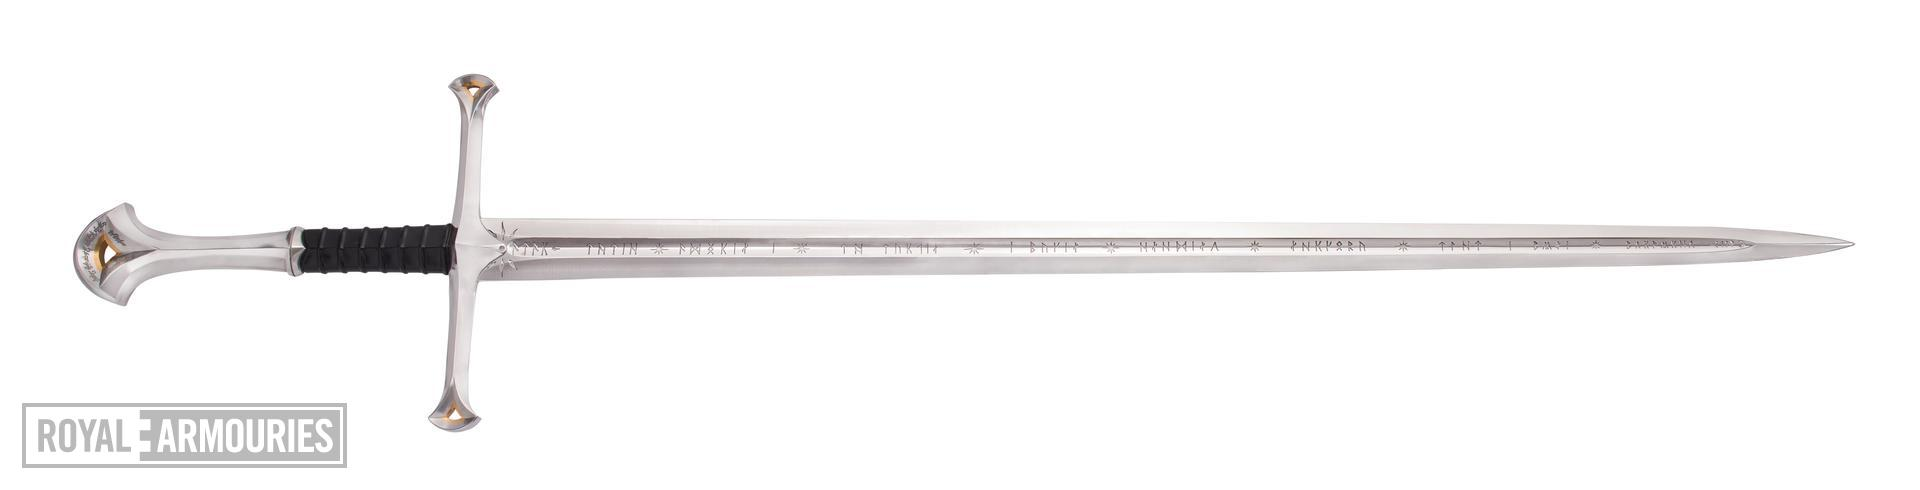 Anduril the flame of the West; Sword of Aragorn